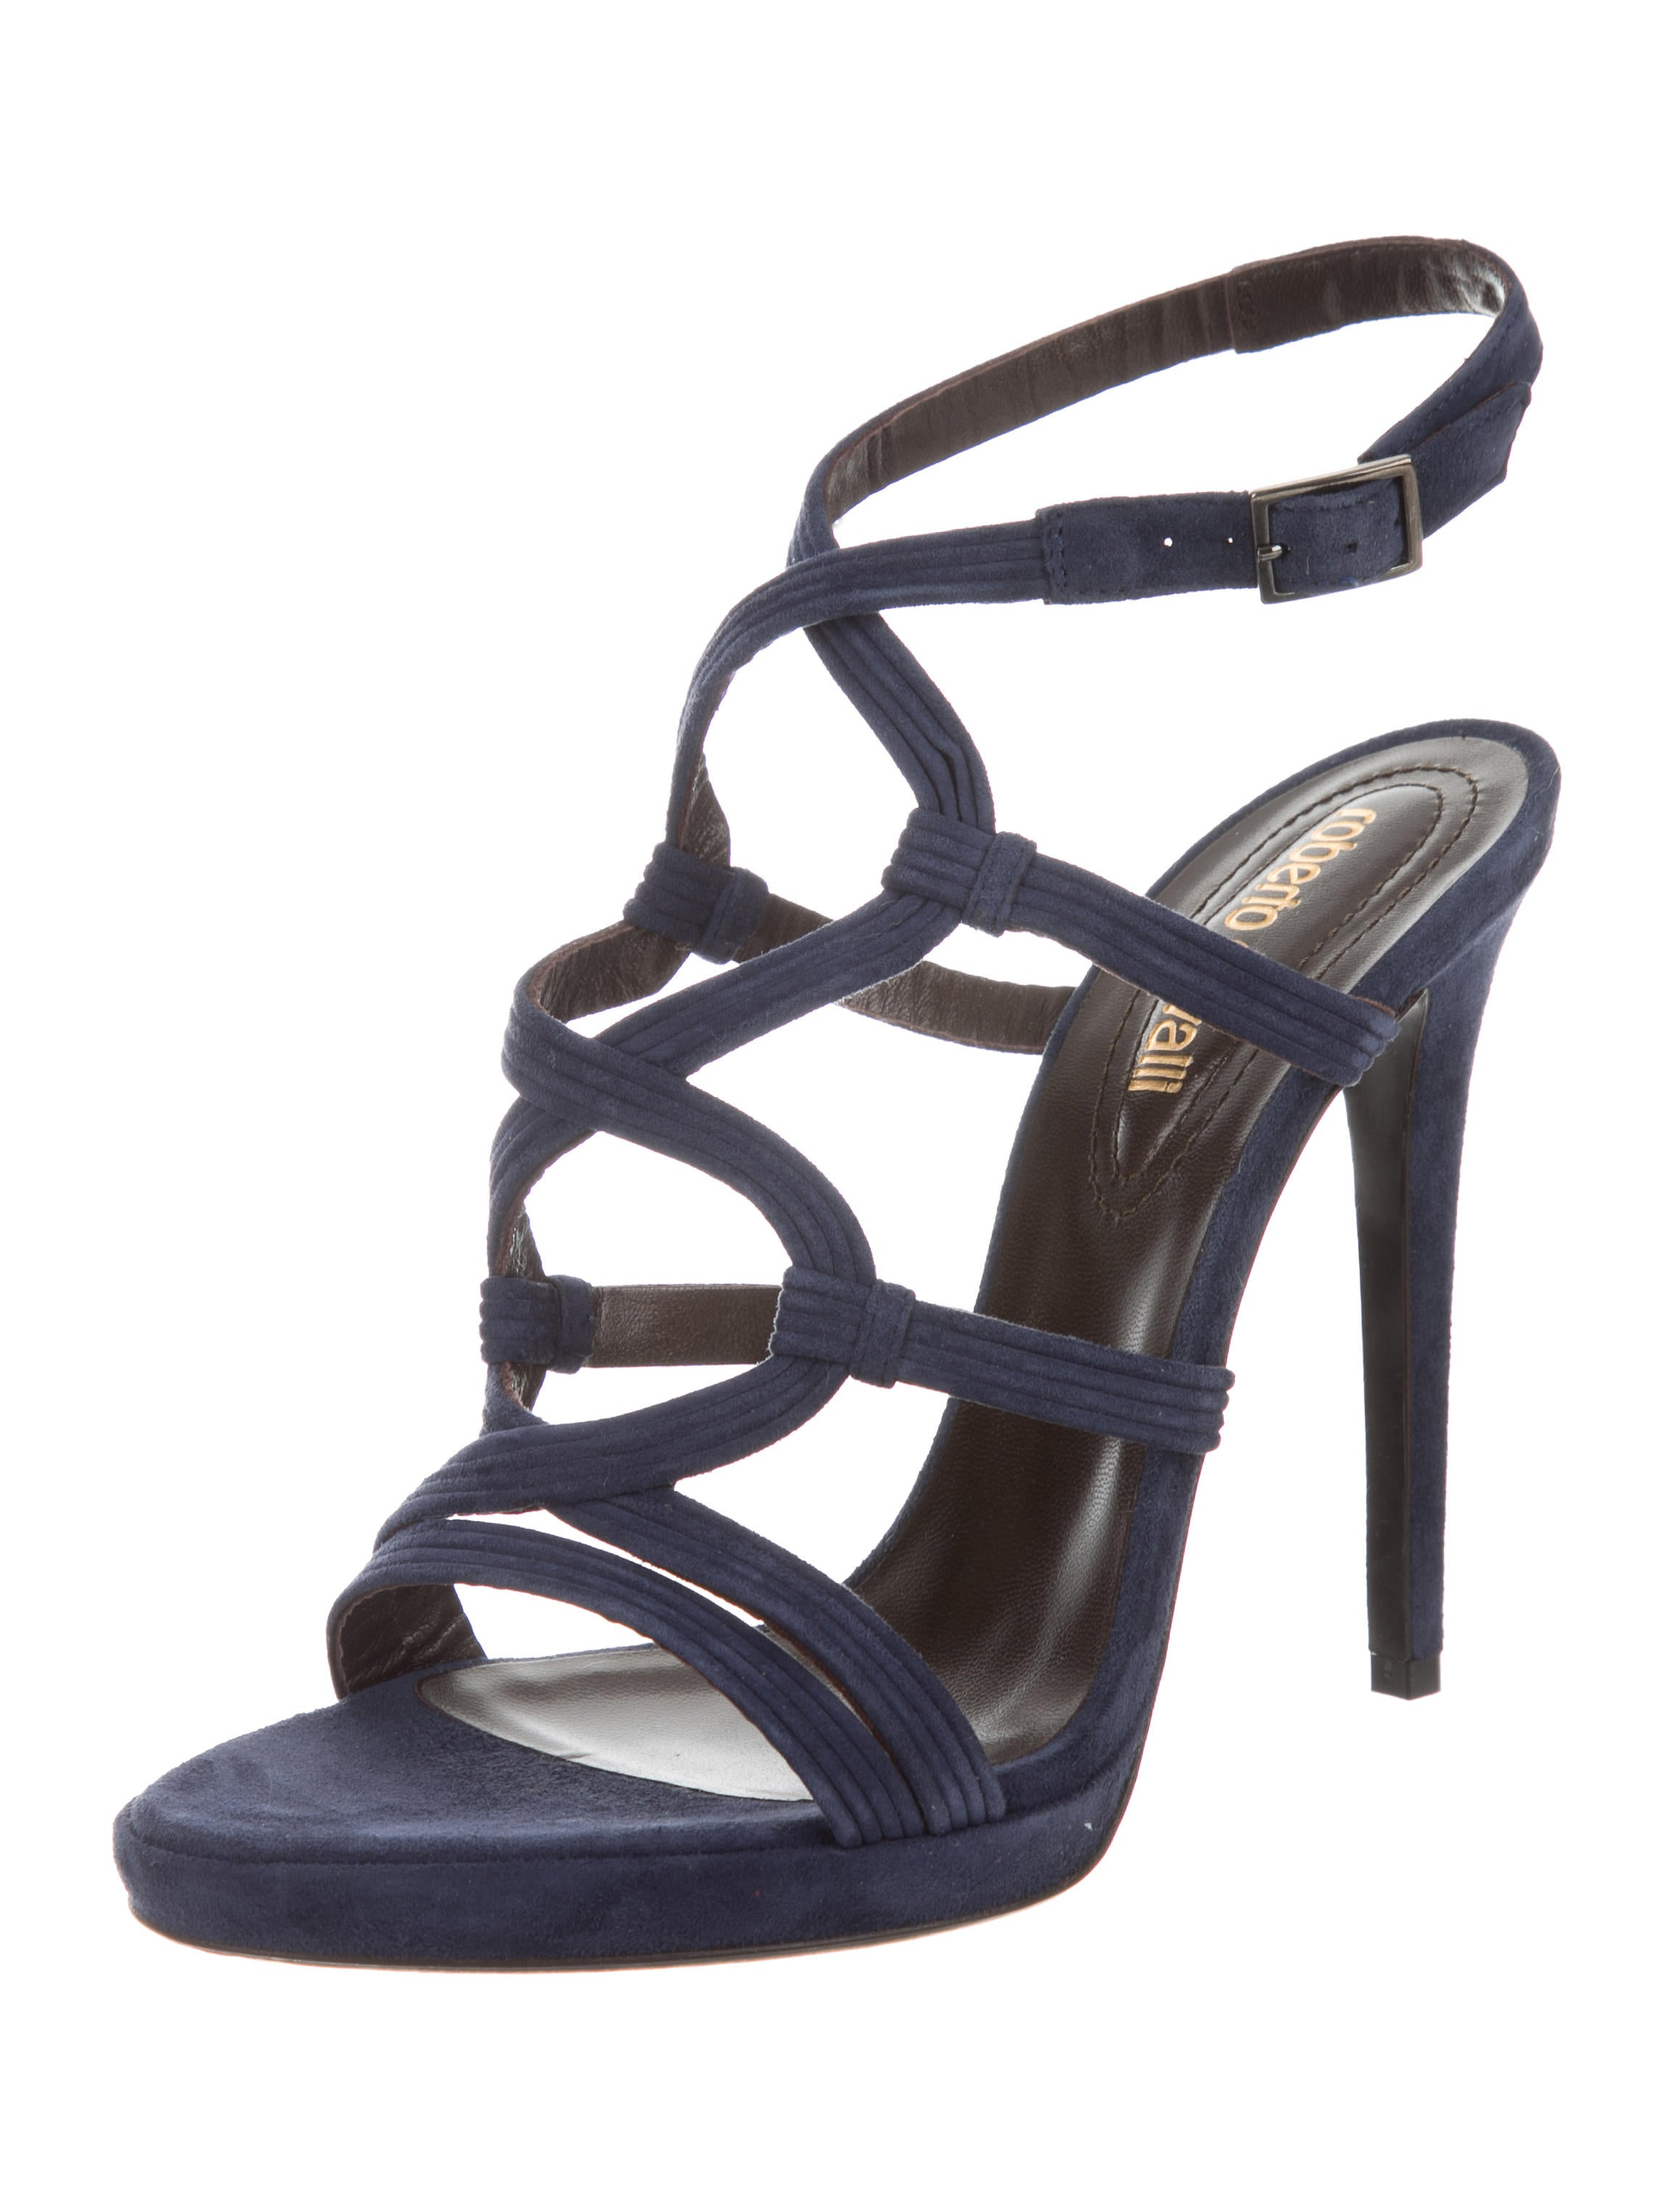 Just Cavalli Suede Cage Sandals outlet pictures low shipping fee cheap online free shipping nicekicks free shipping many kinds of j0Feiw